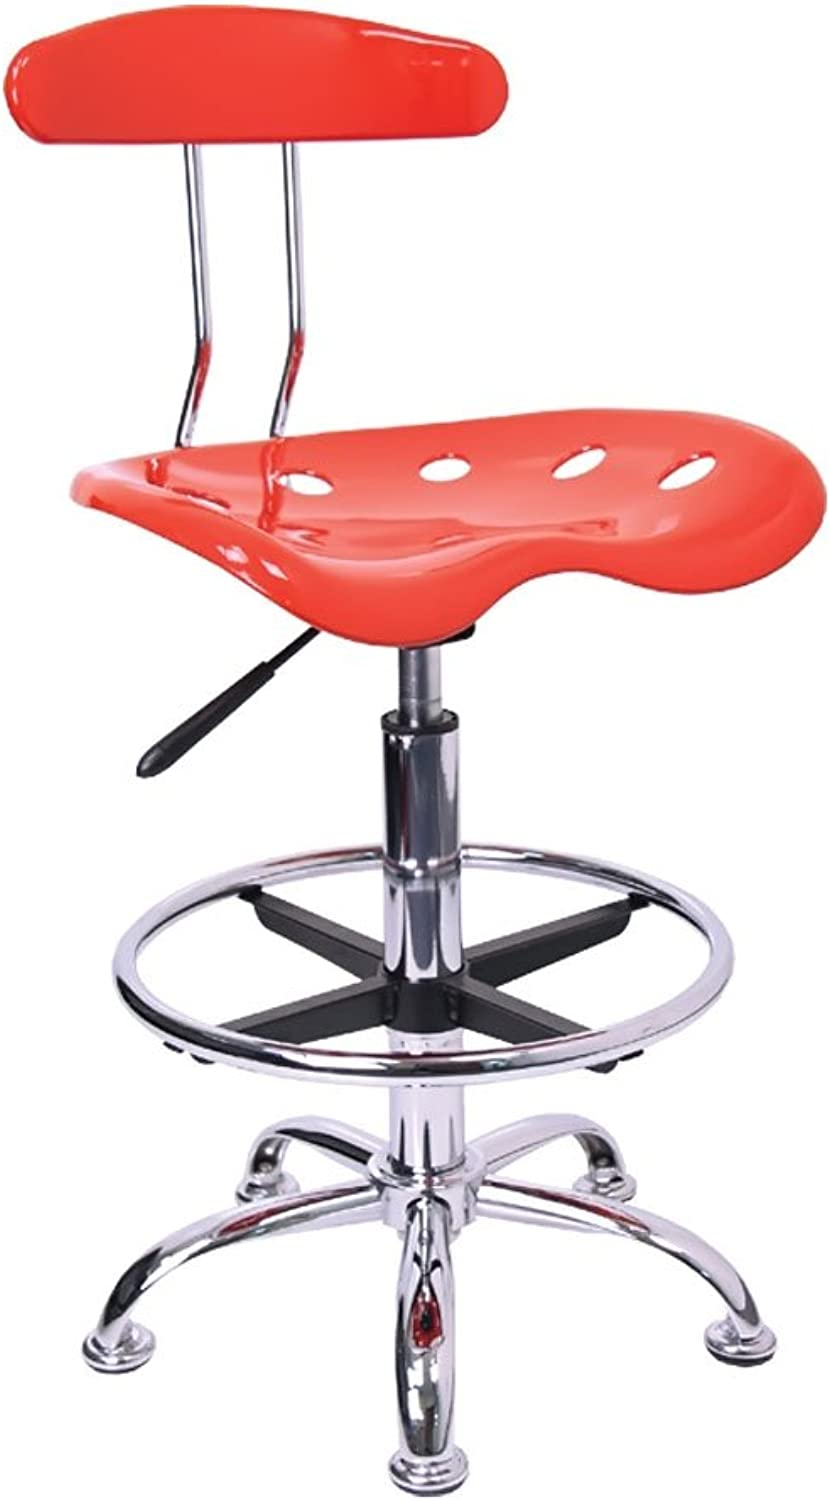 Offex Vibrant Drafting Stool with Tractor Seat, Red and Chrome